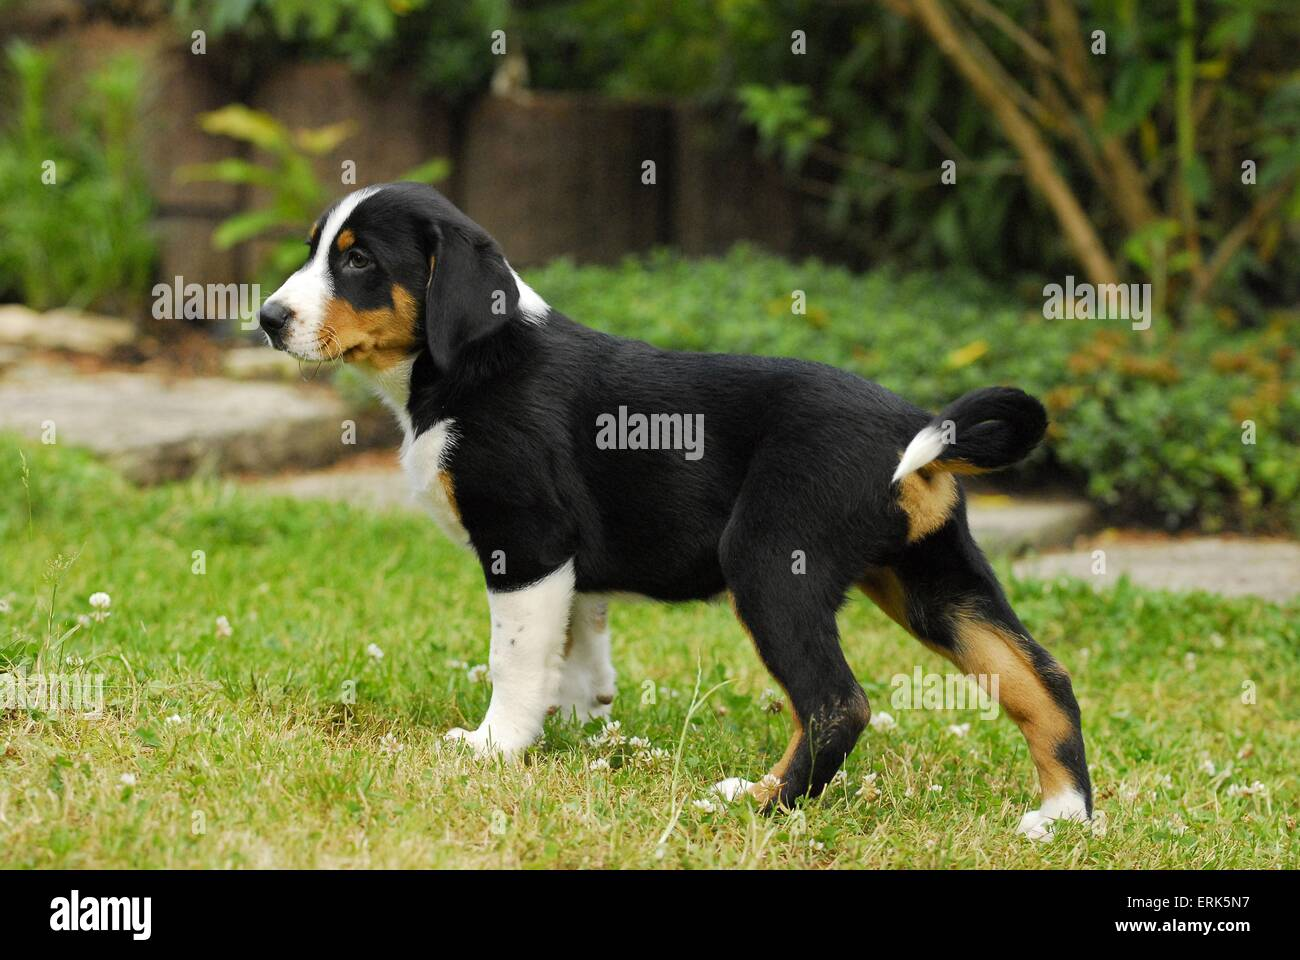 Appenzell Mountain Dog Puppy Stock Photo 83400163 Alamy